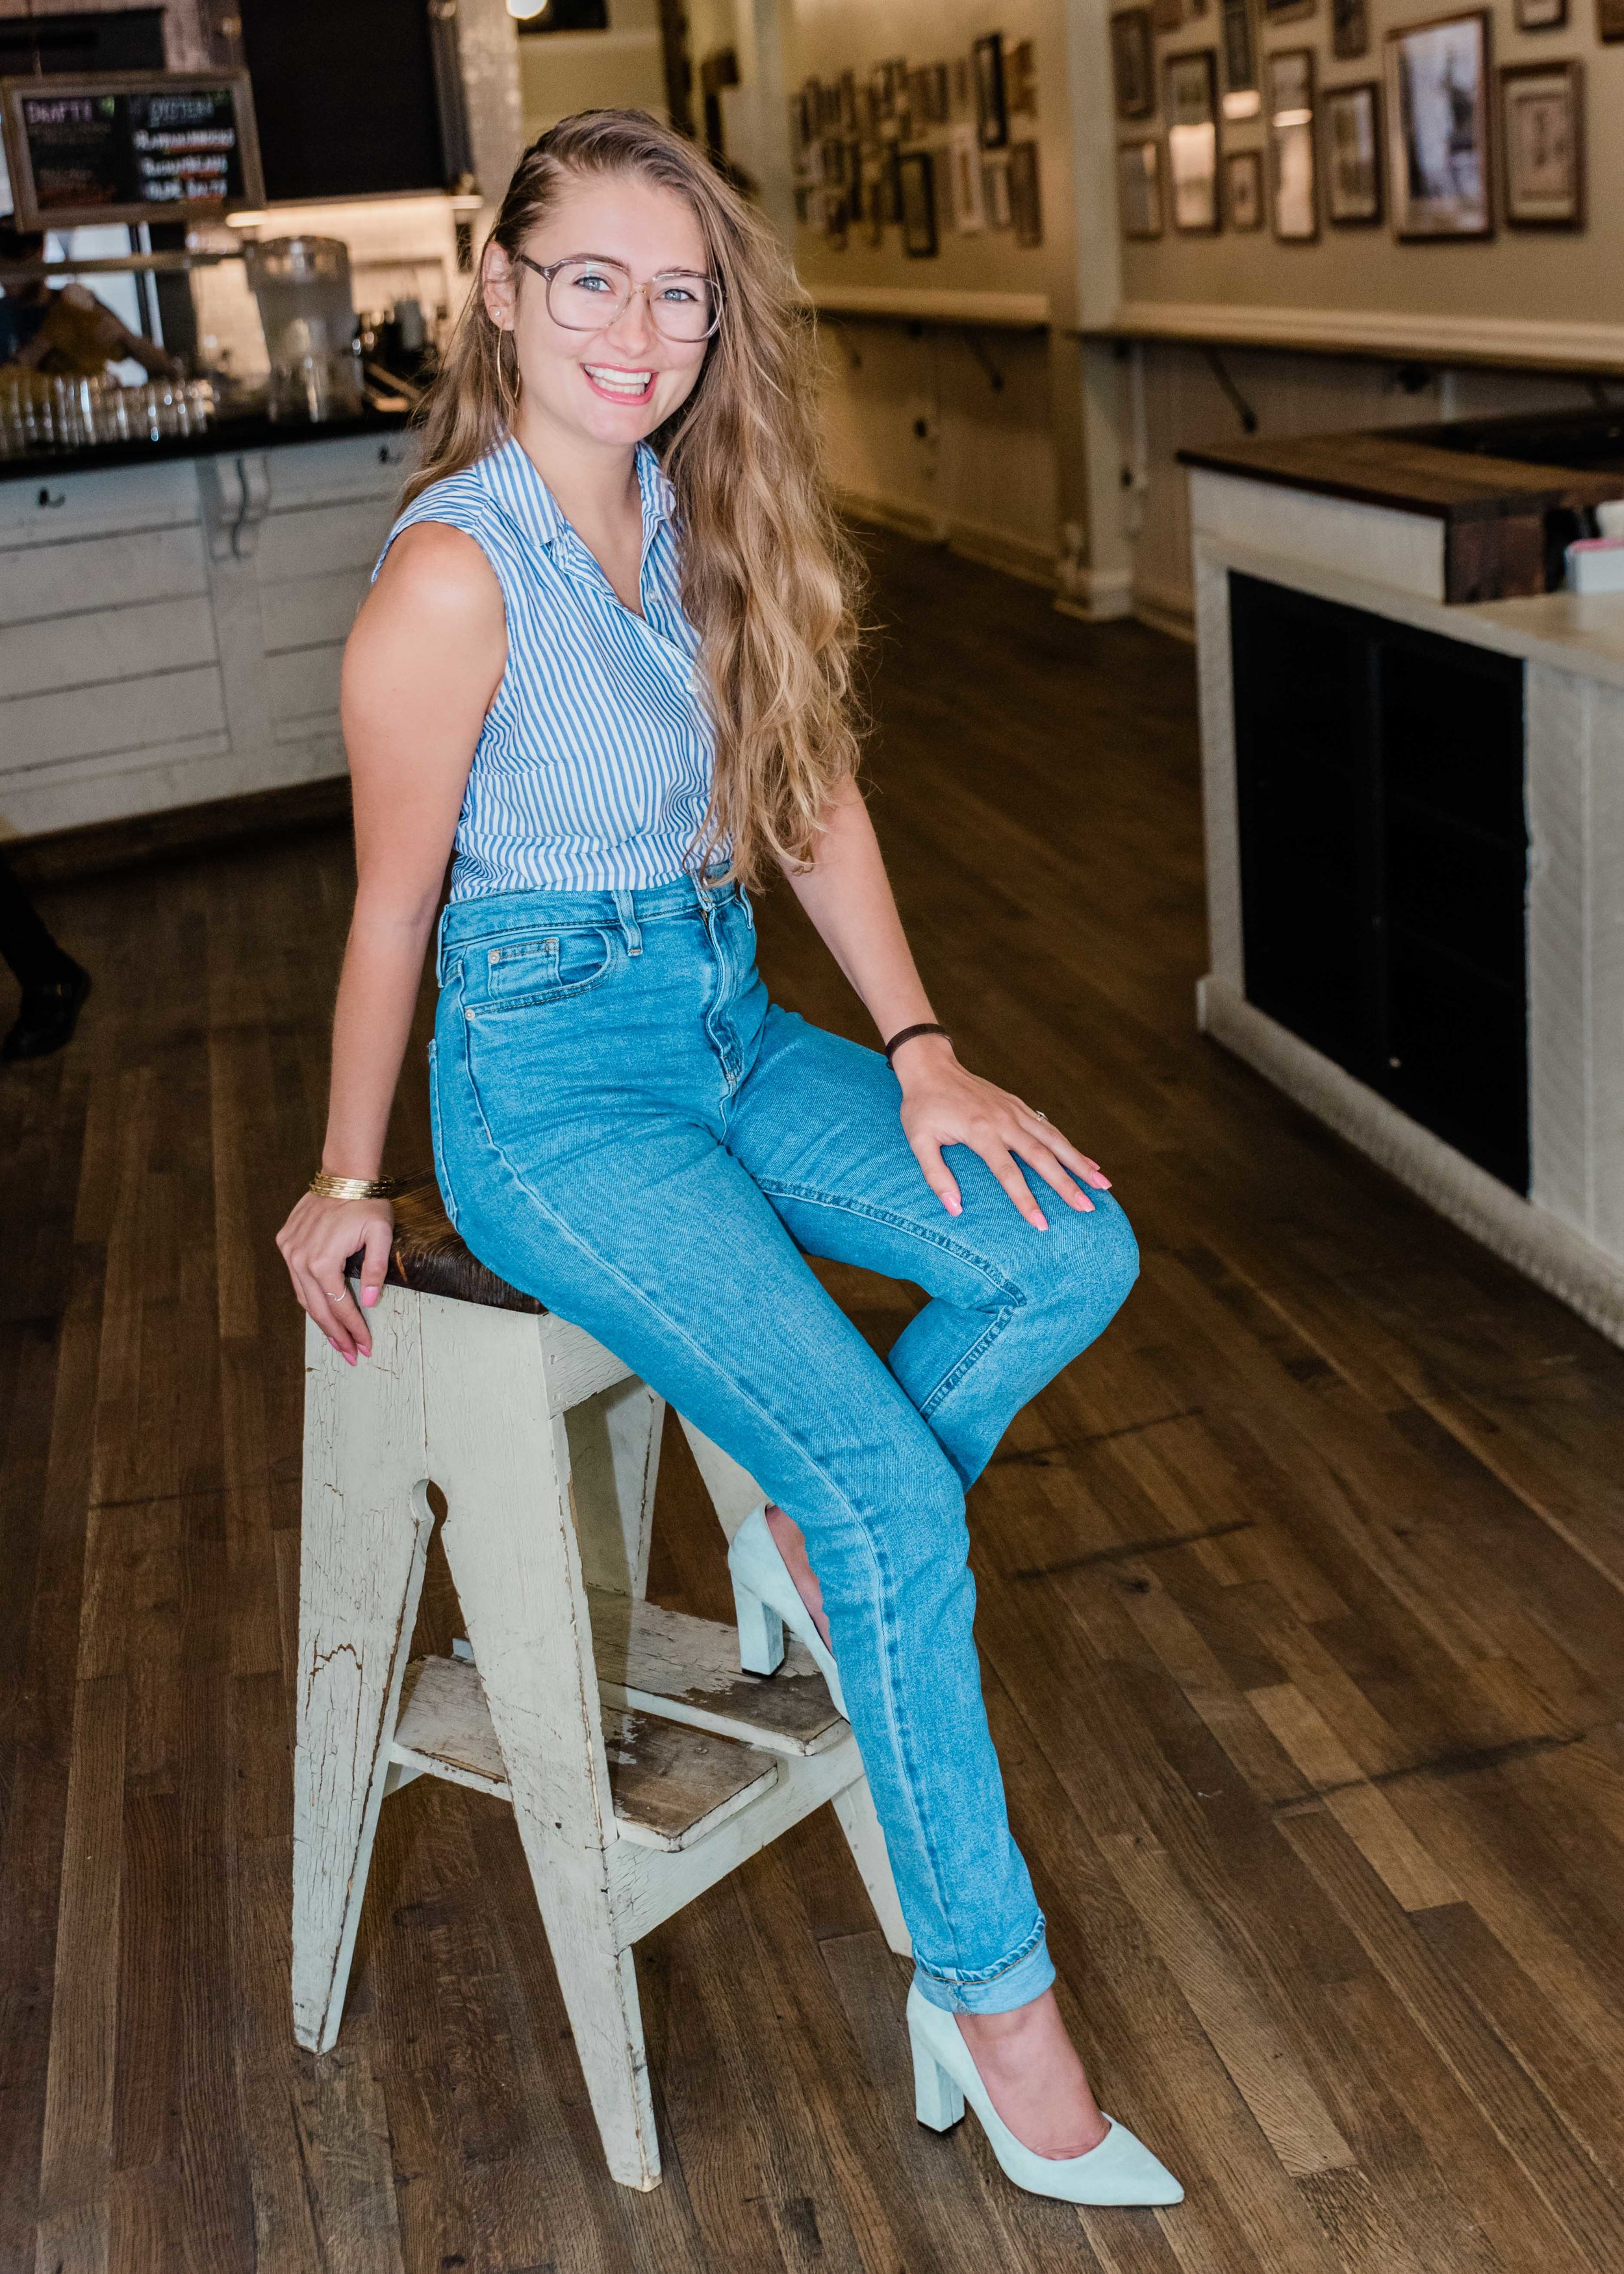 MadeleineHall_KelliPricePhotography_ClassicSouthernA_October2018.jpg